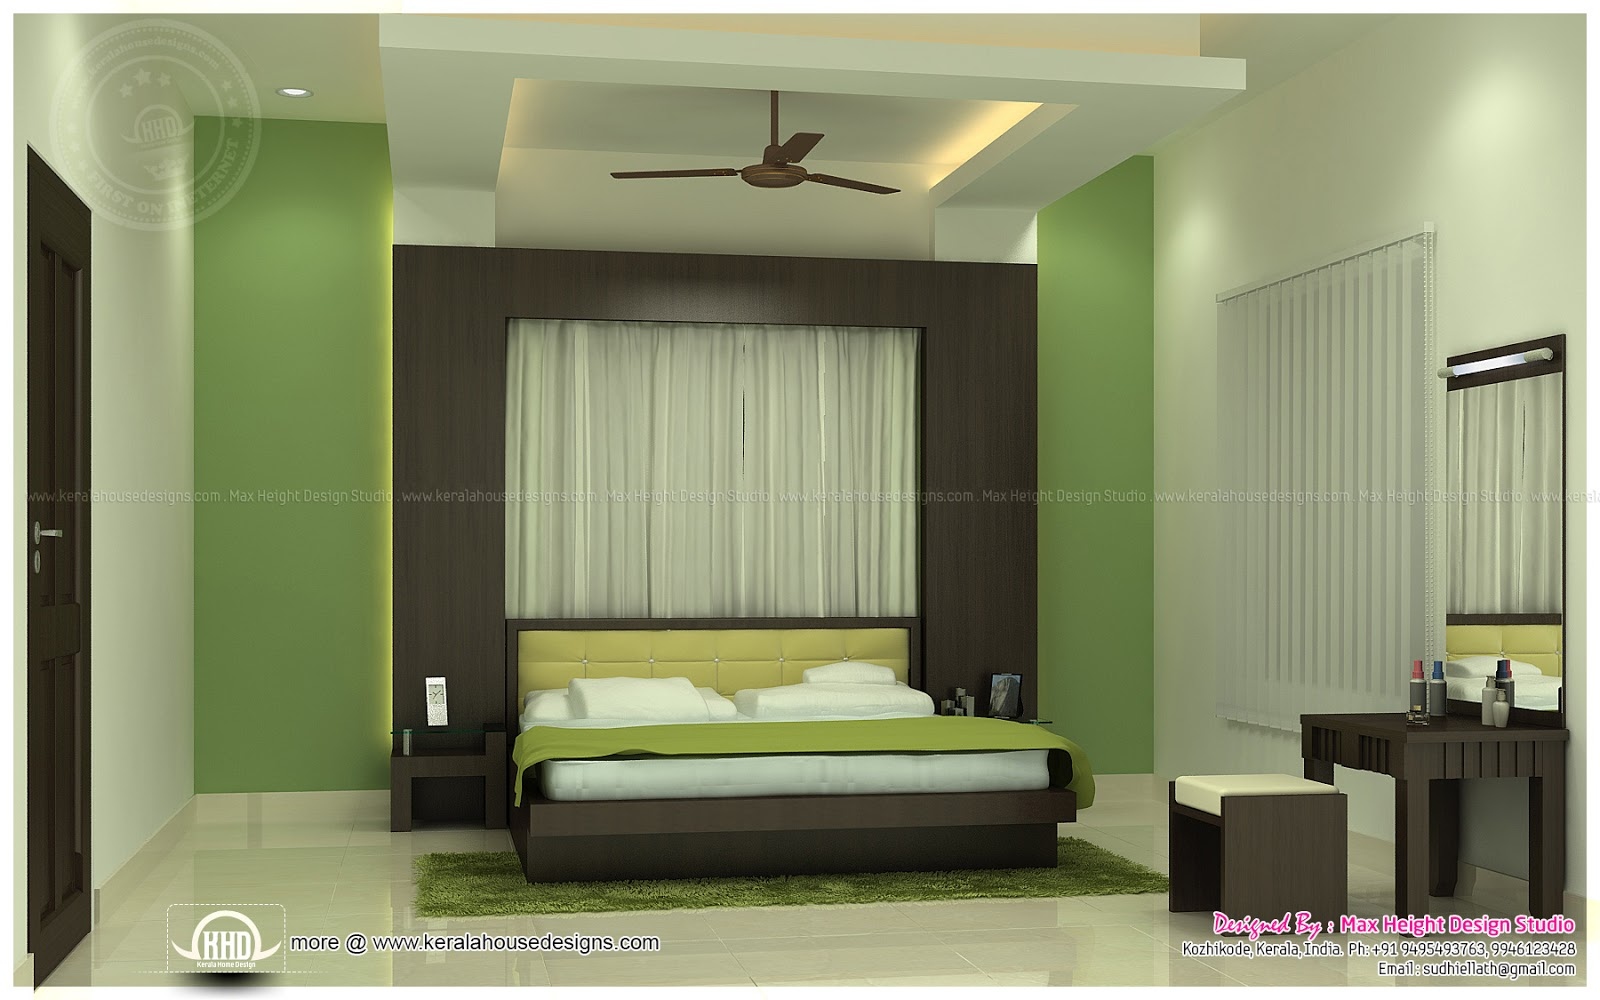 Beautiful interior ideas for home kerala home design and Low cost interior design ideas india